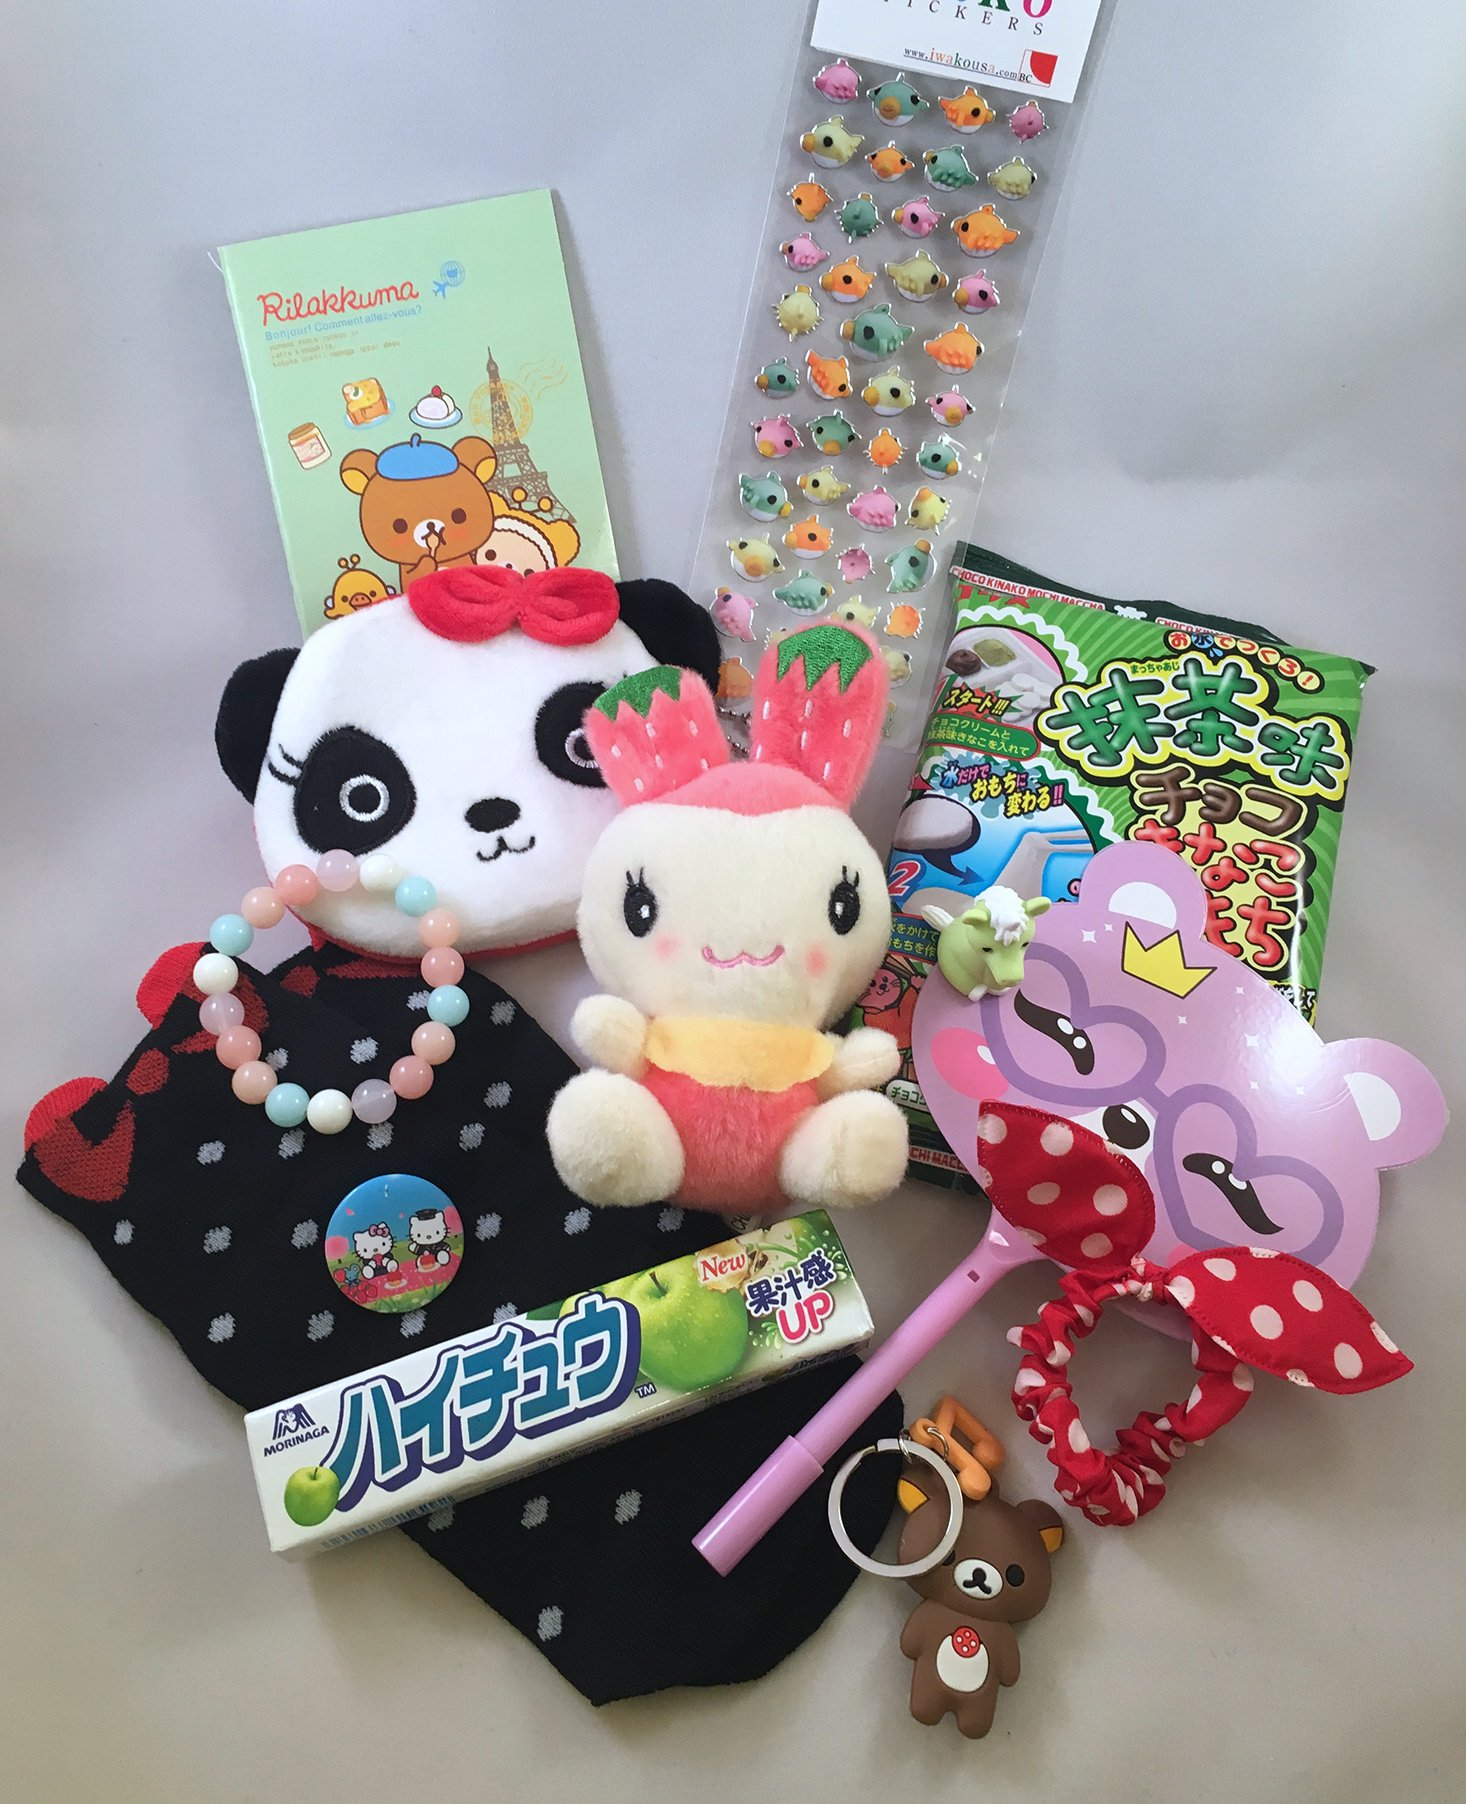 The-CuteBox-August-2016-Contents